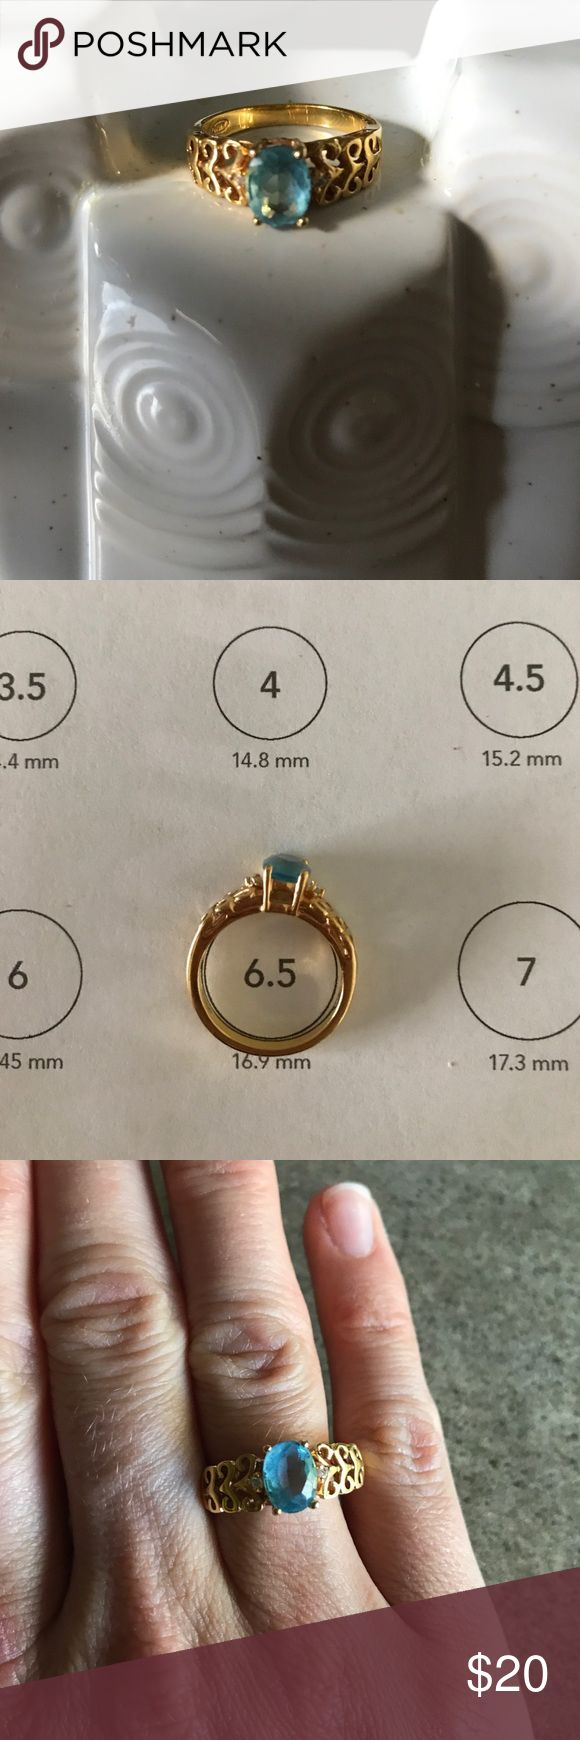 "Avon ring with blue ""topaz"" stone Unsure of materials - selling for my mom seems to be a 6.5 by printable online ring sizer. •Please note this size is approx• Very pretty with slight scratching/wear and I could find no tarnishing. Could use a cleaning. Avon Jewelry Rings"